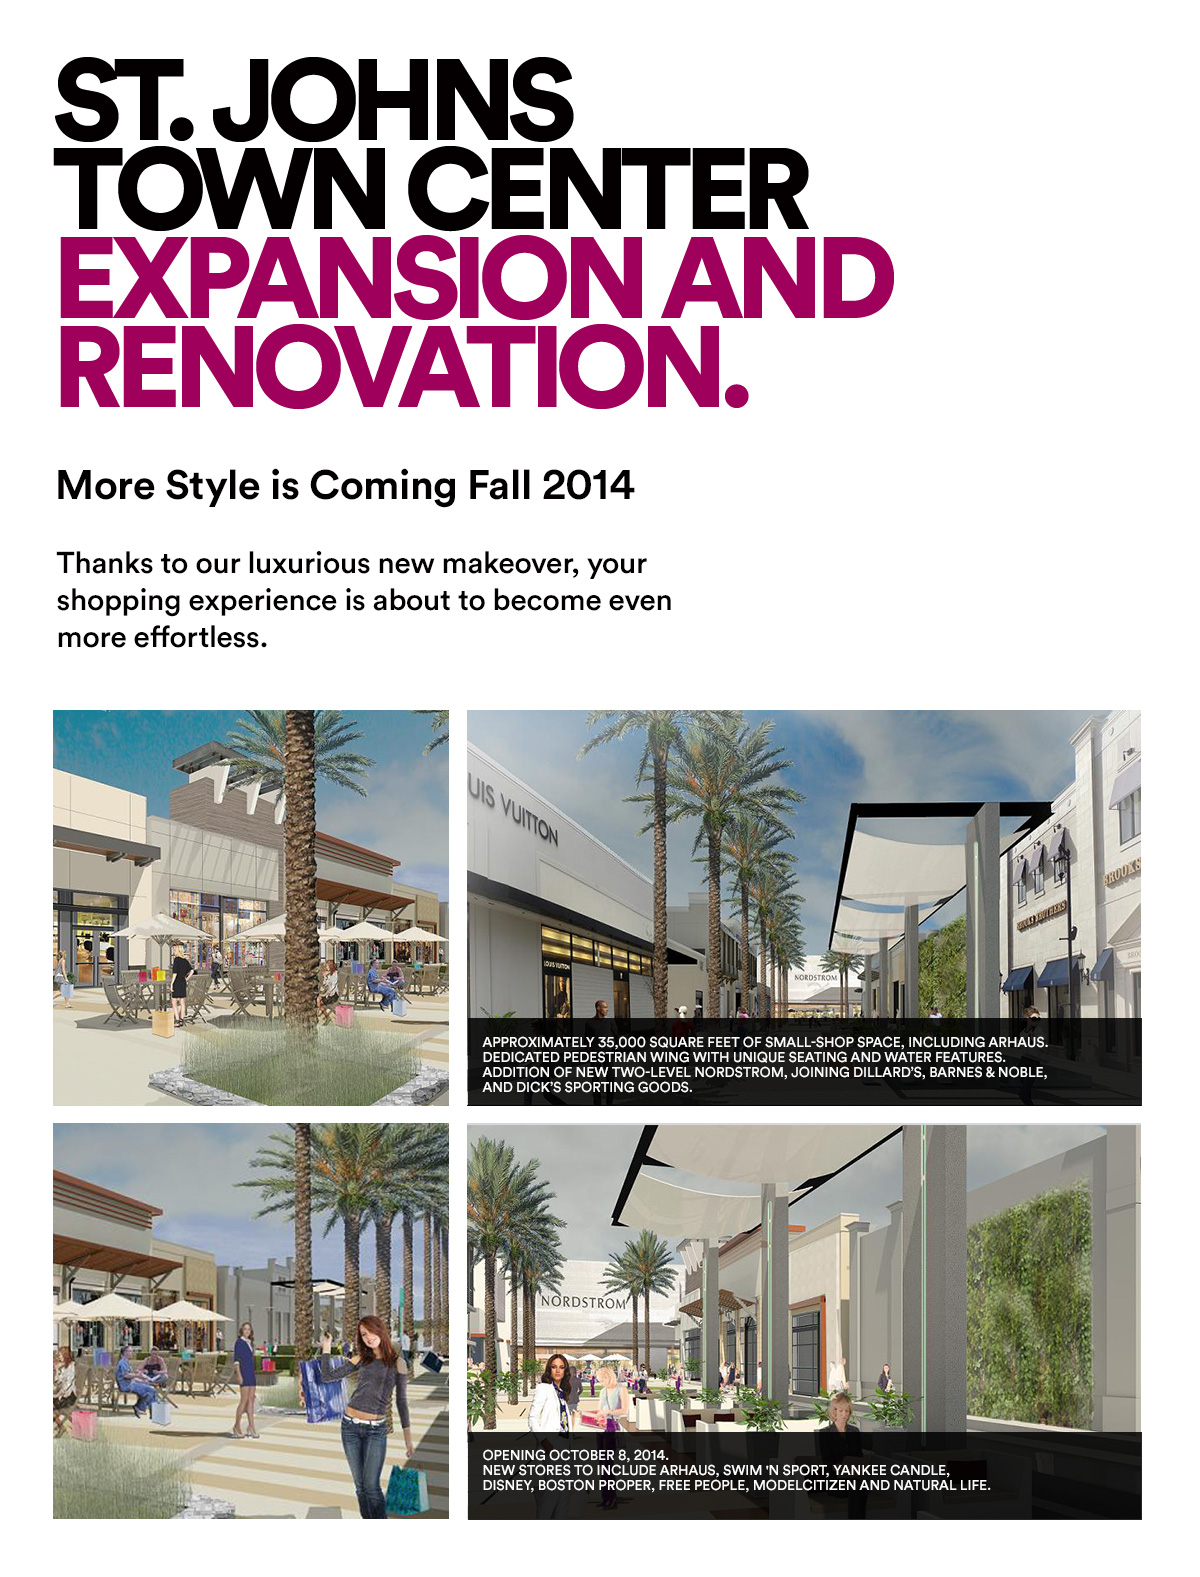 ST. JOHNS TOWN CENTER EXPANSION AND RENOVATION.